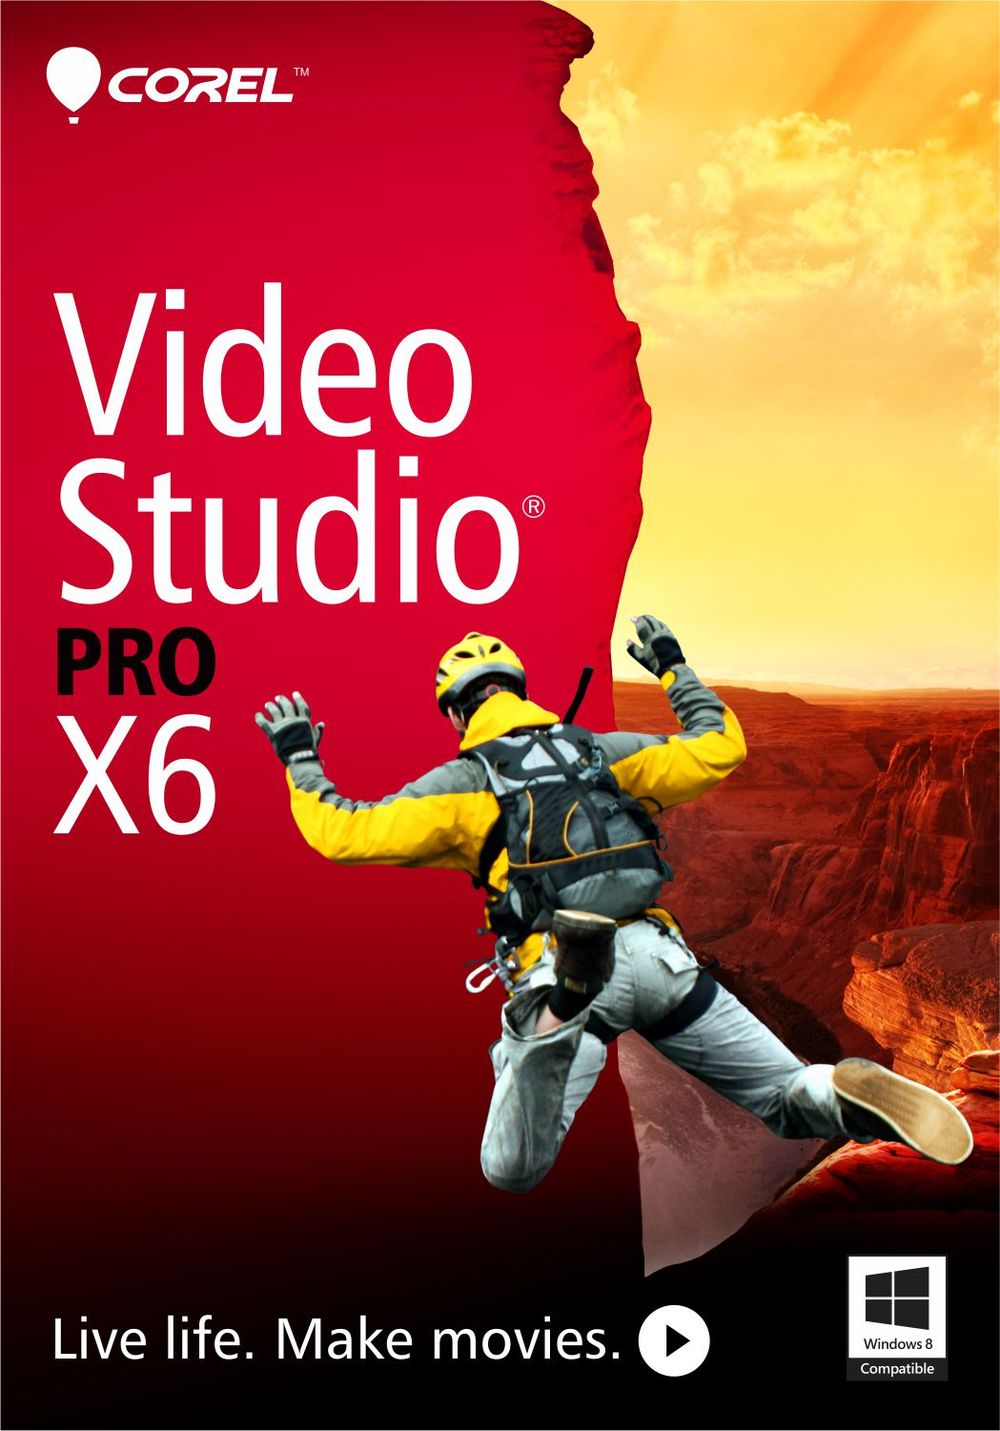 VideoStudio Pro X6 is a Fast-Moving Editor from Corel Corporation -  Videomaker